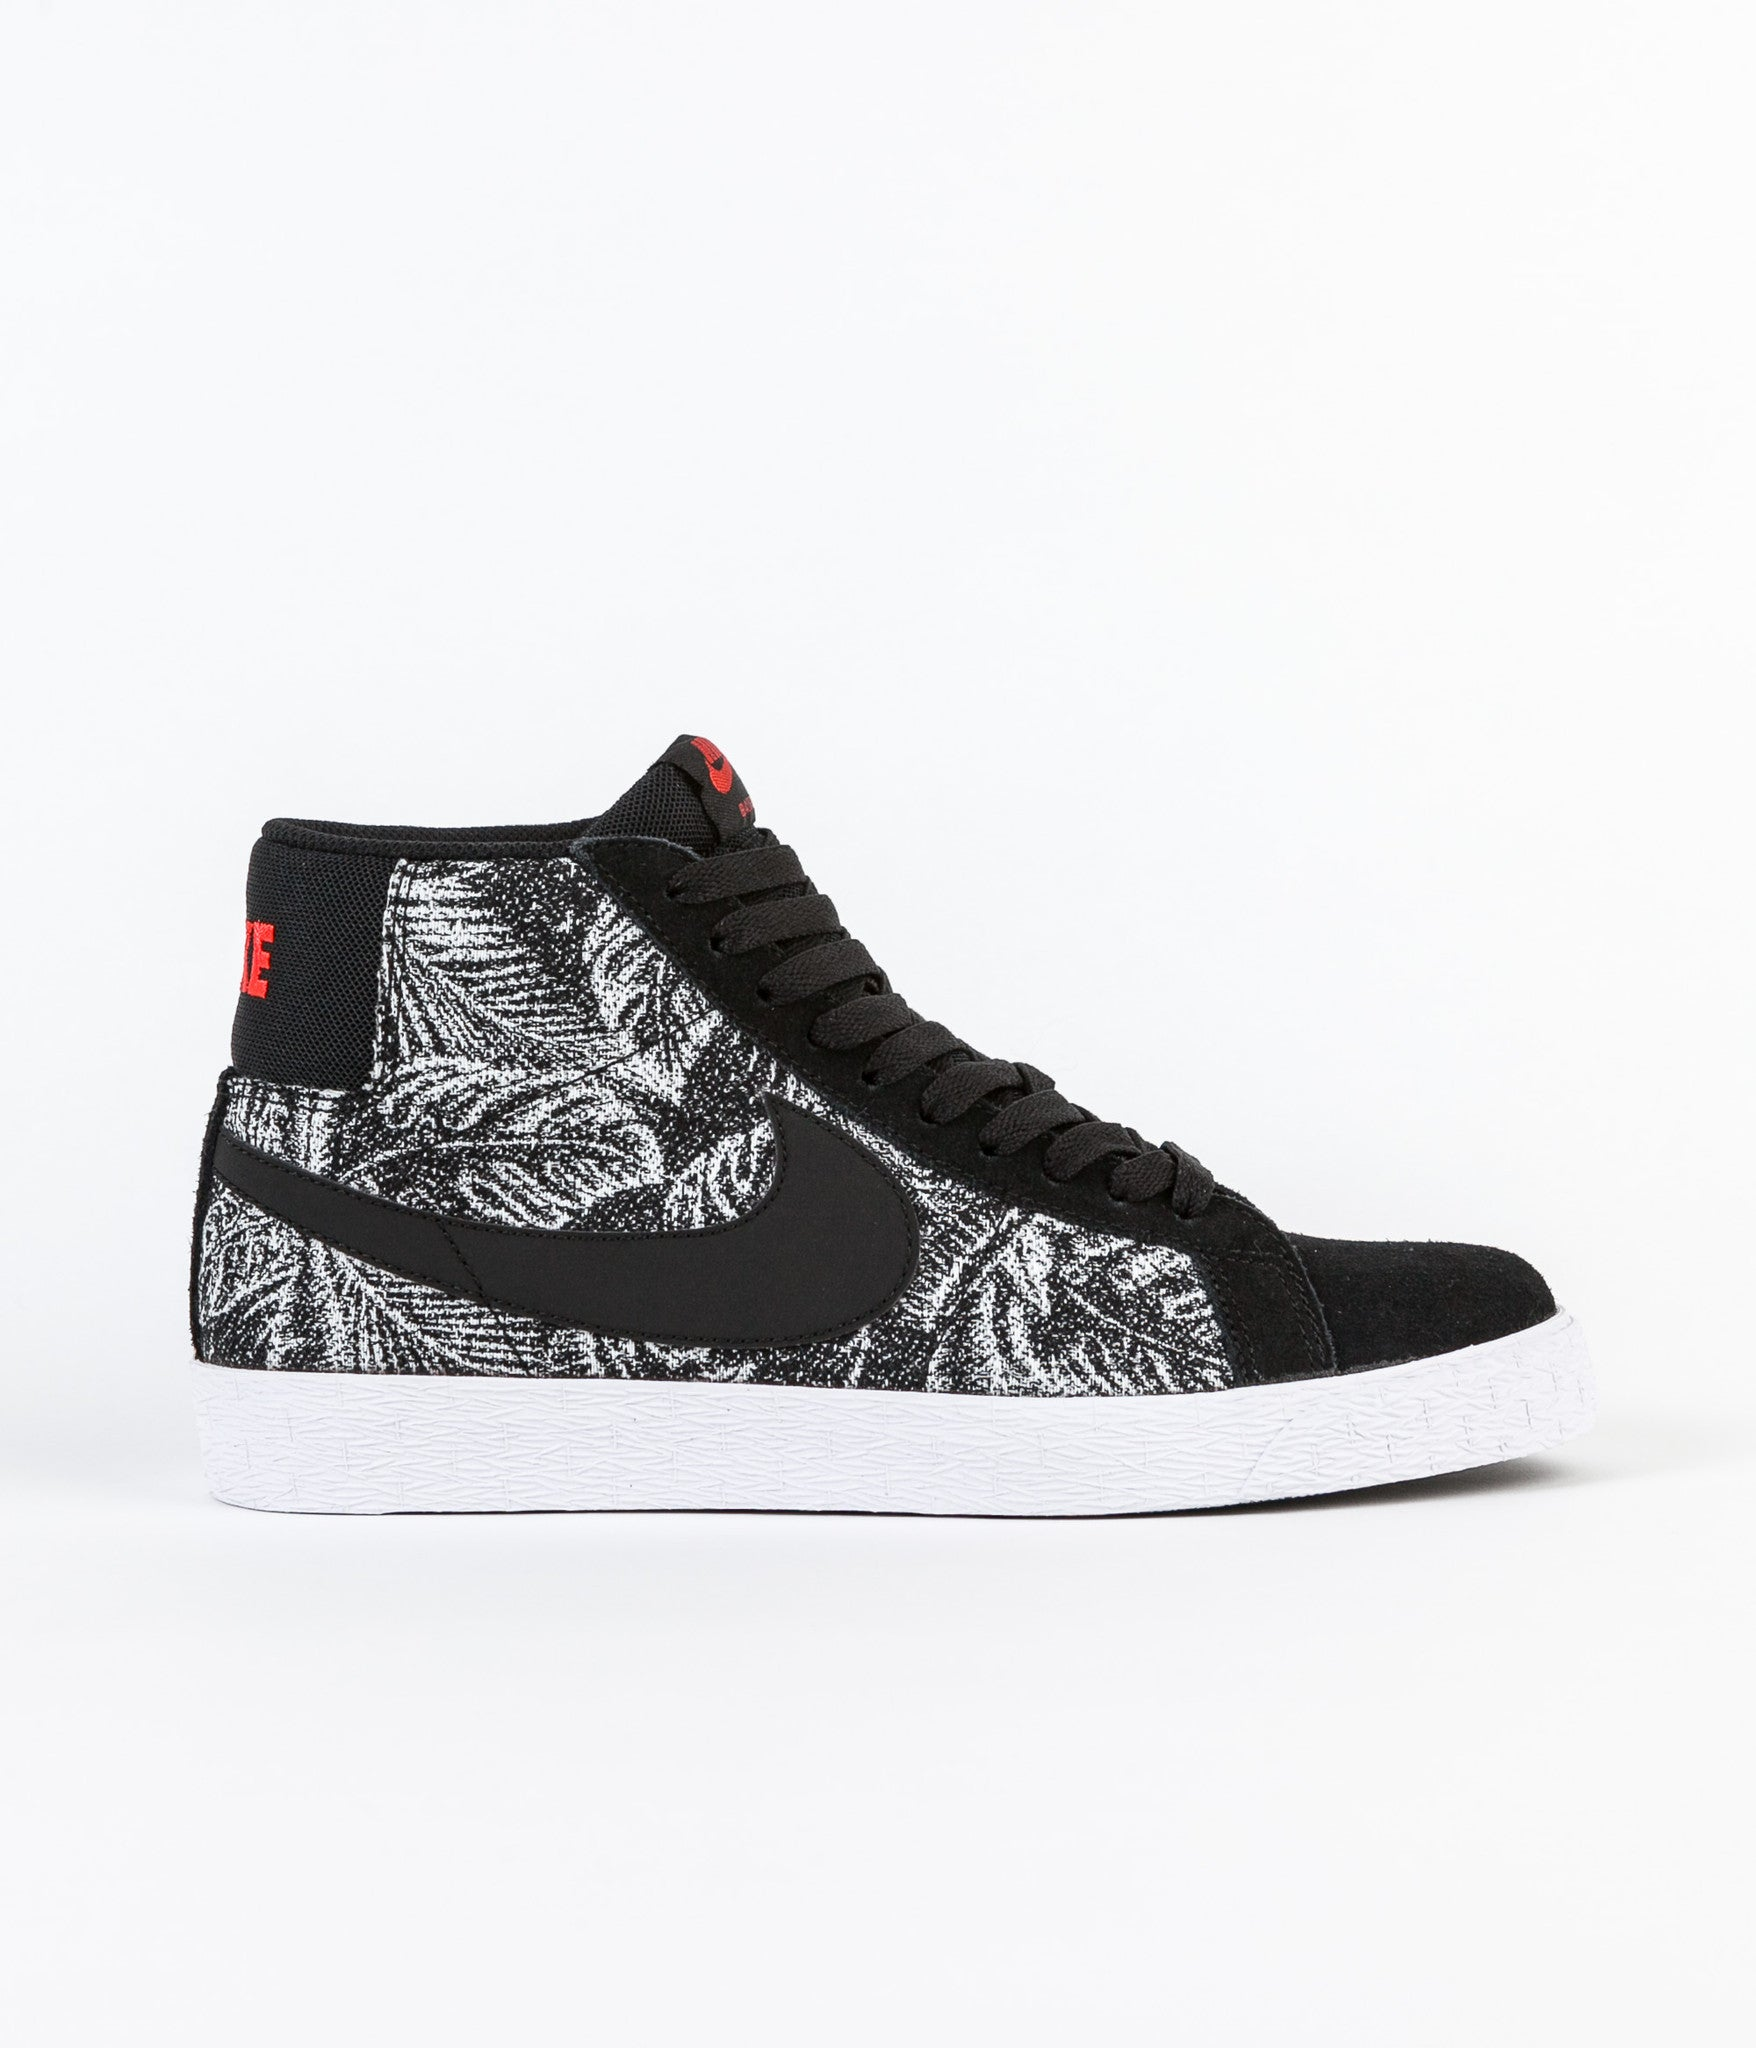 Nike SB Blazer Mid Shoes -  Black / Black - White - Max Orange